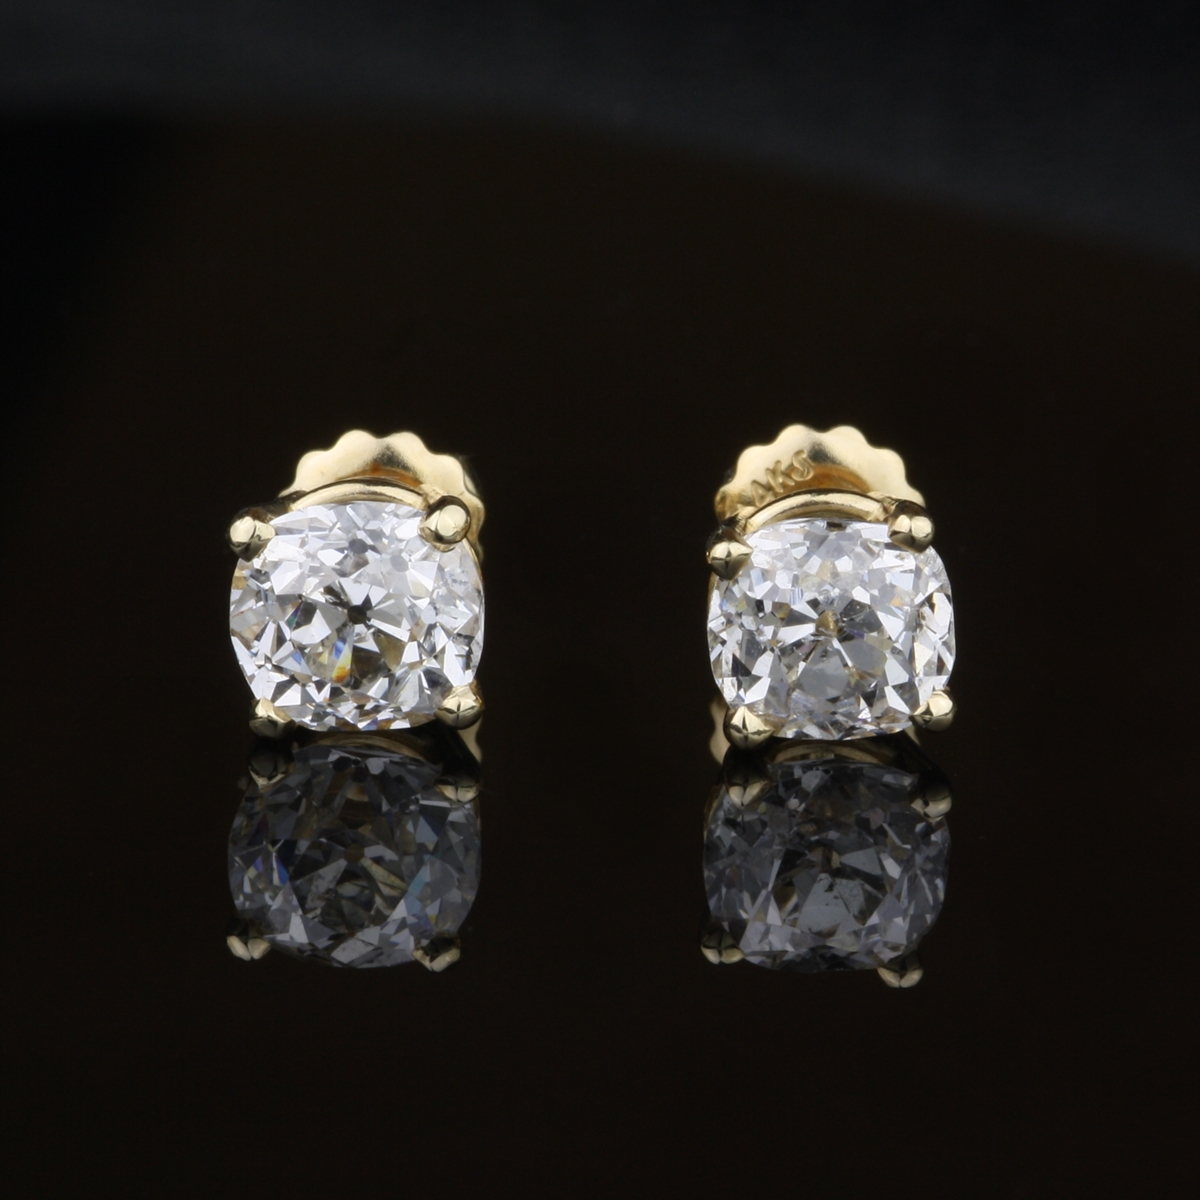 Carat Diamond Earrings Stud